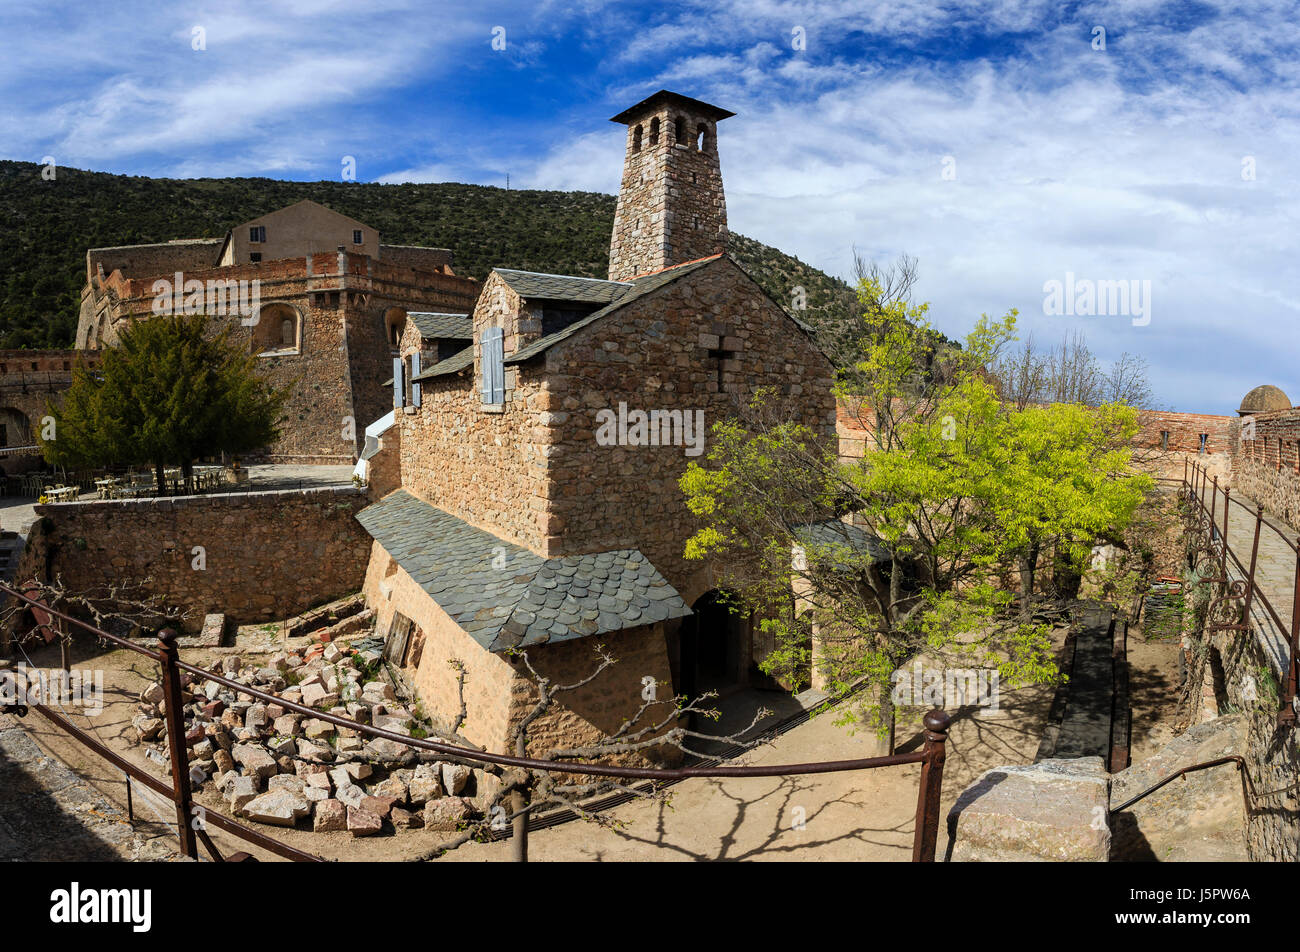 France, Pyrenees Orientales, Villefranche de Conflent, labelled Les Plus Beaux Villages de France ( Most beautiful - Stock Image